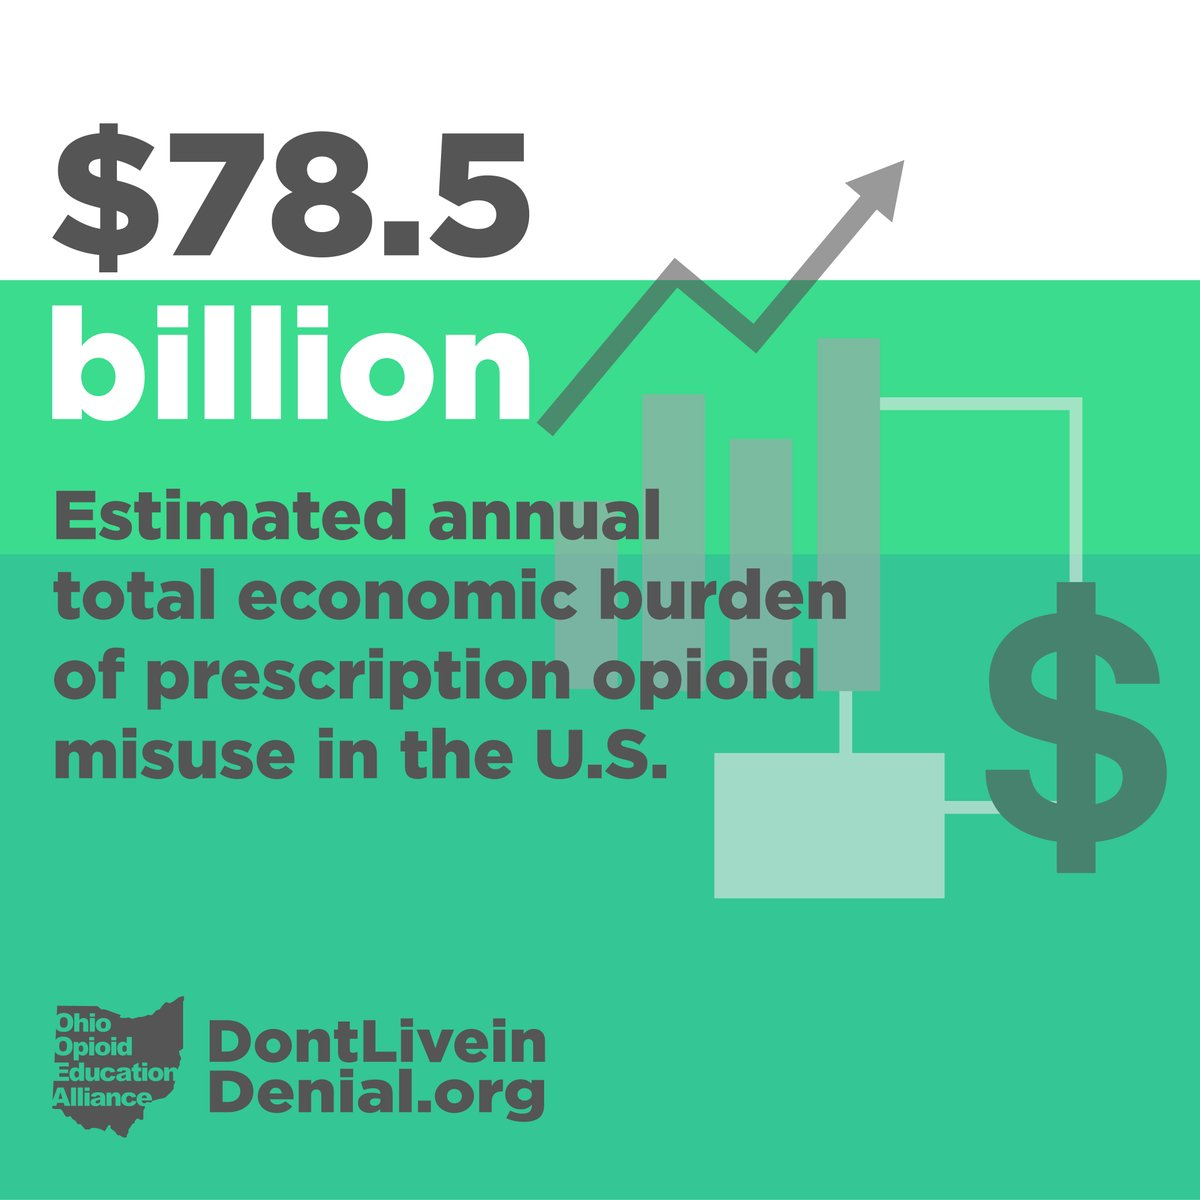 The economic costs of prescription opioid misuse are overwhelming.  #wisdomwednesday  #DontLiveinDenial<br>http://pic.twitter.com/lpIwGqLR90